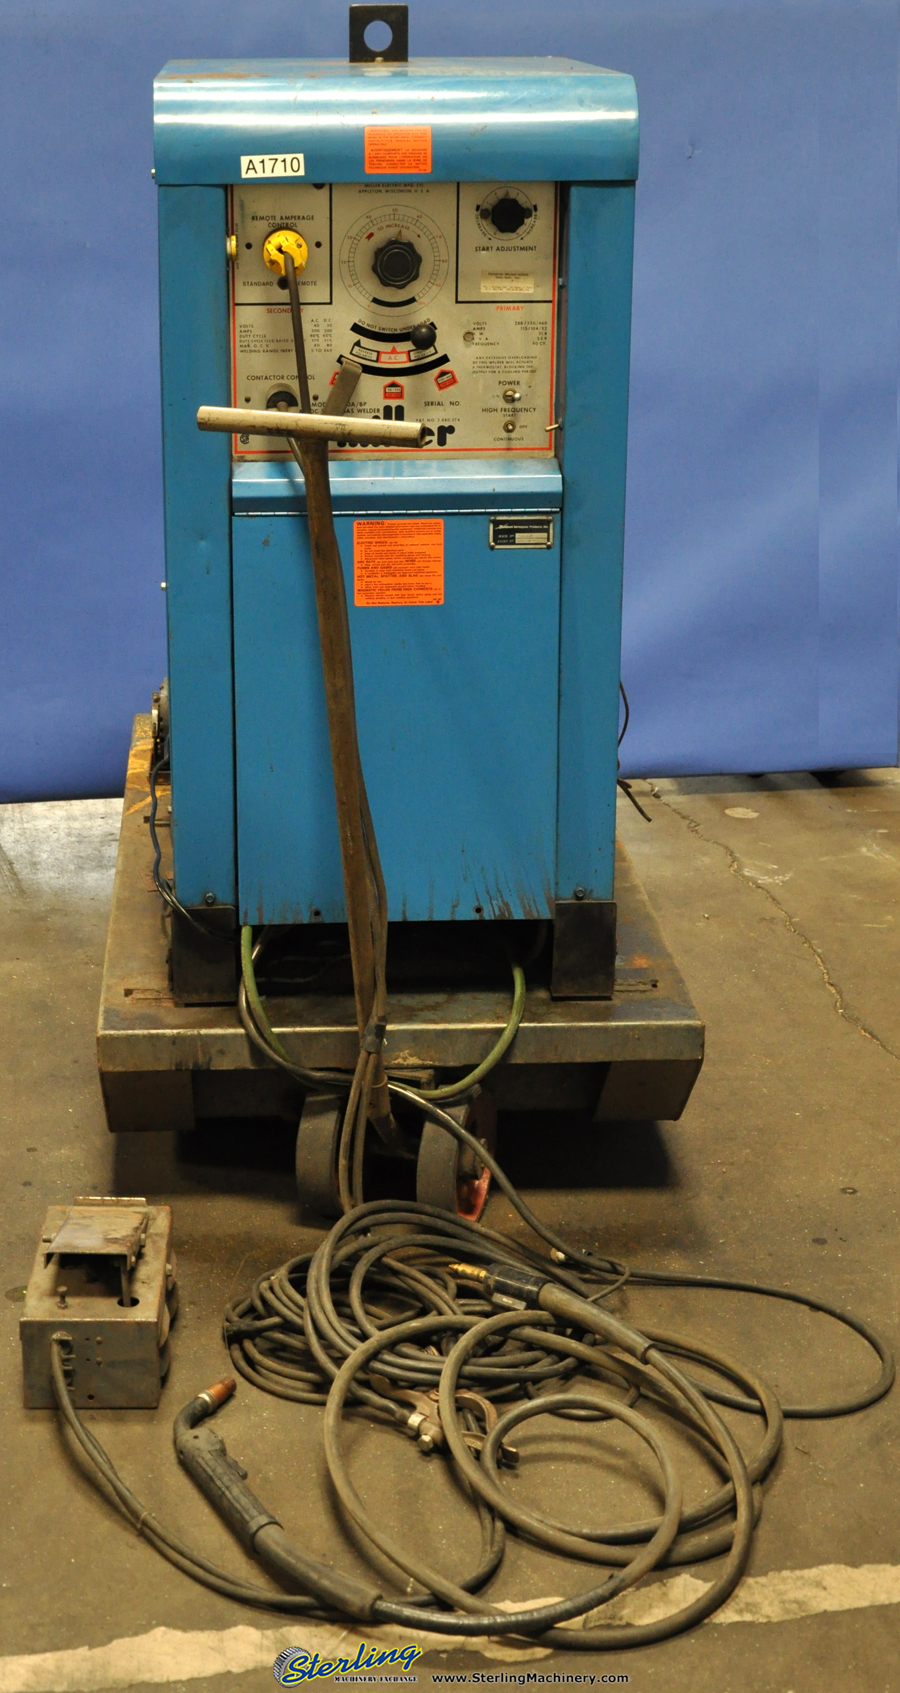 A1710 300 amp used miller tig welder, mdl 330 a bp sterling machinery  at fashall.co